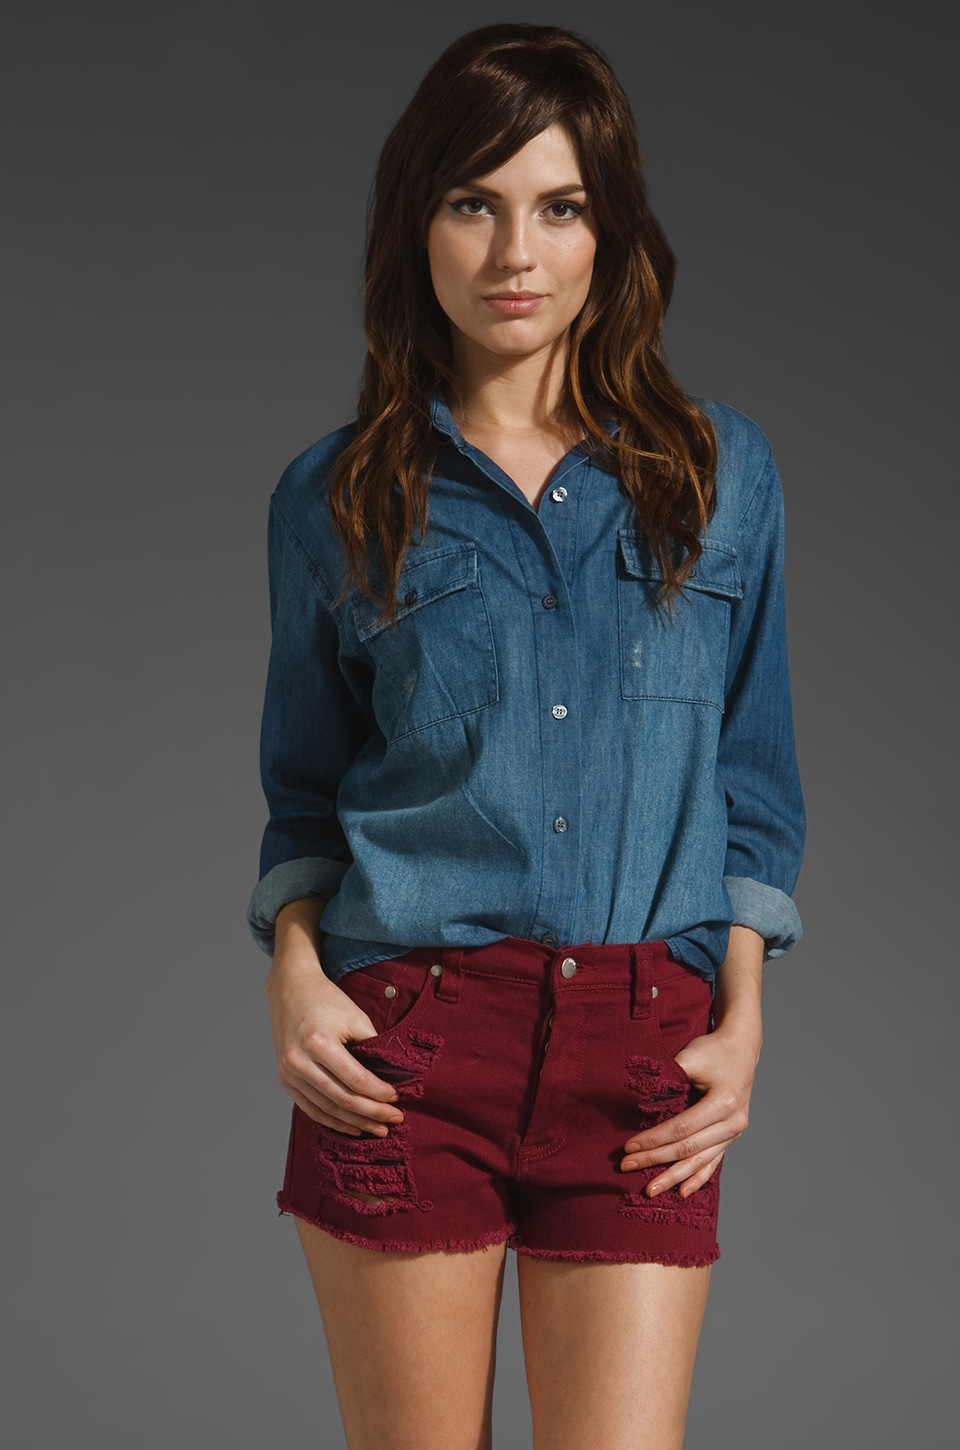 Jen's Pirate Booty Texas Tuxedo Shirt in Denim Blue